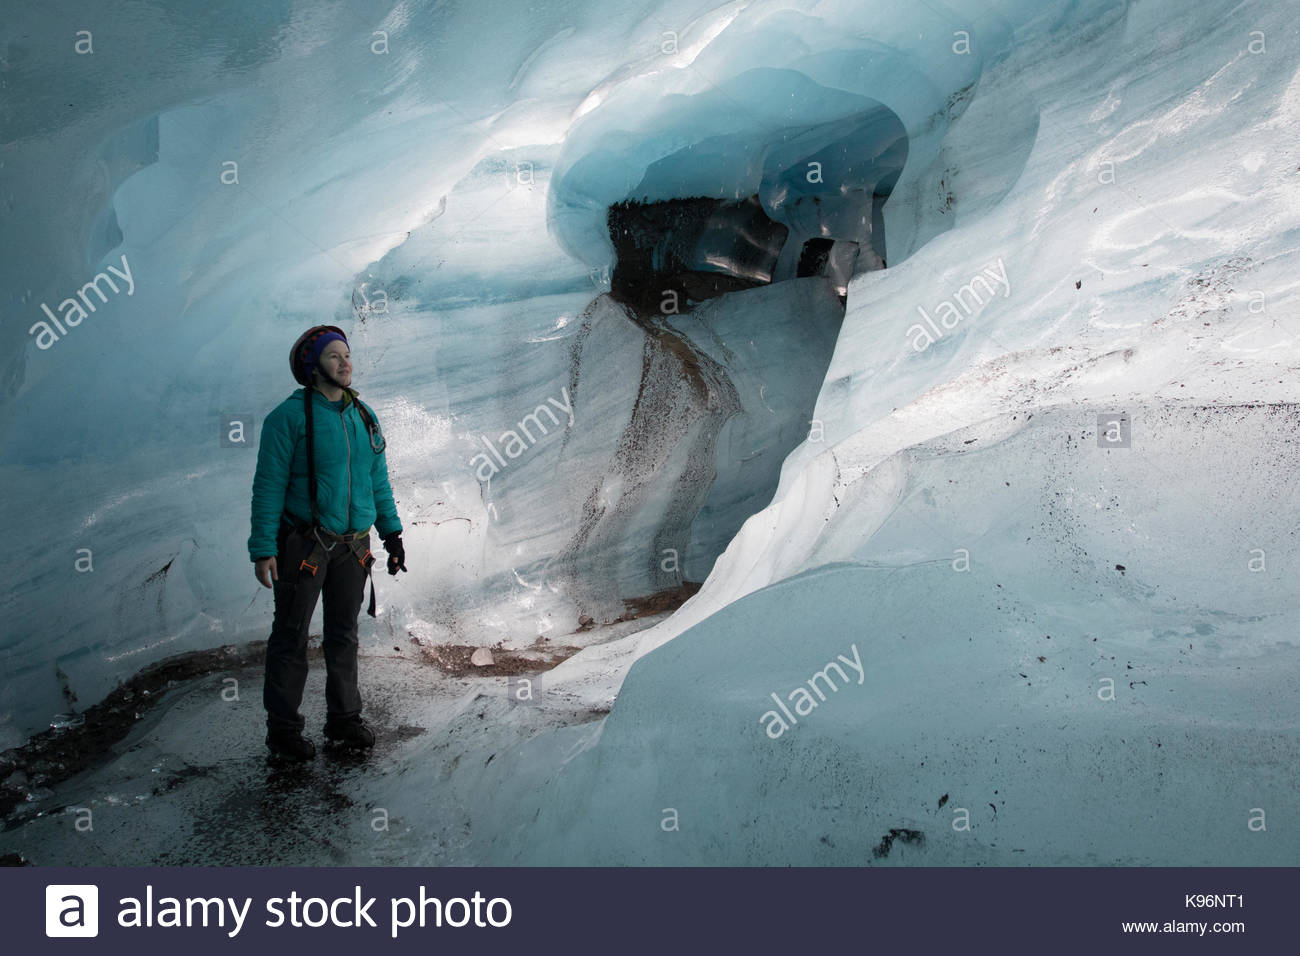 A woman stands in a natural ice cave that formed under Svinafellsjokull. - Stock Image